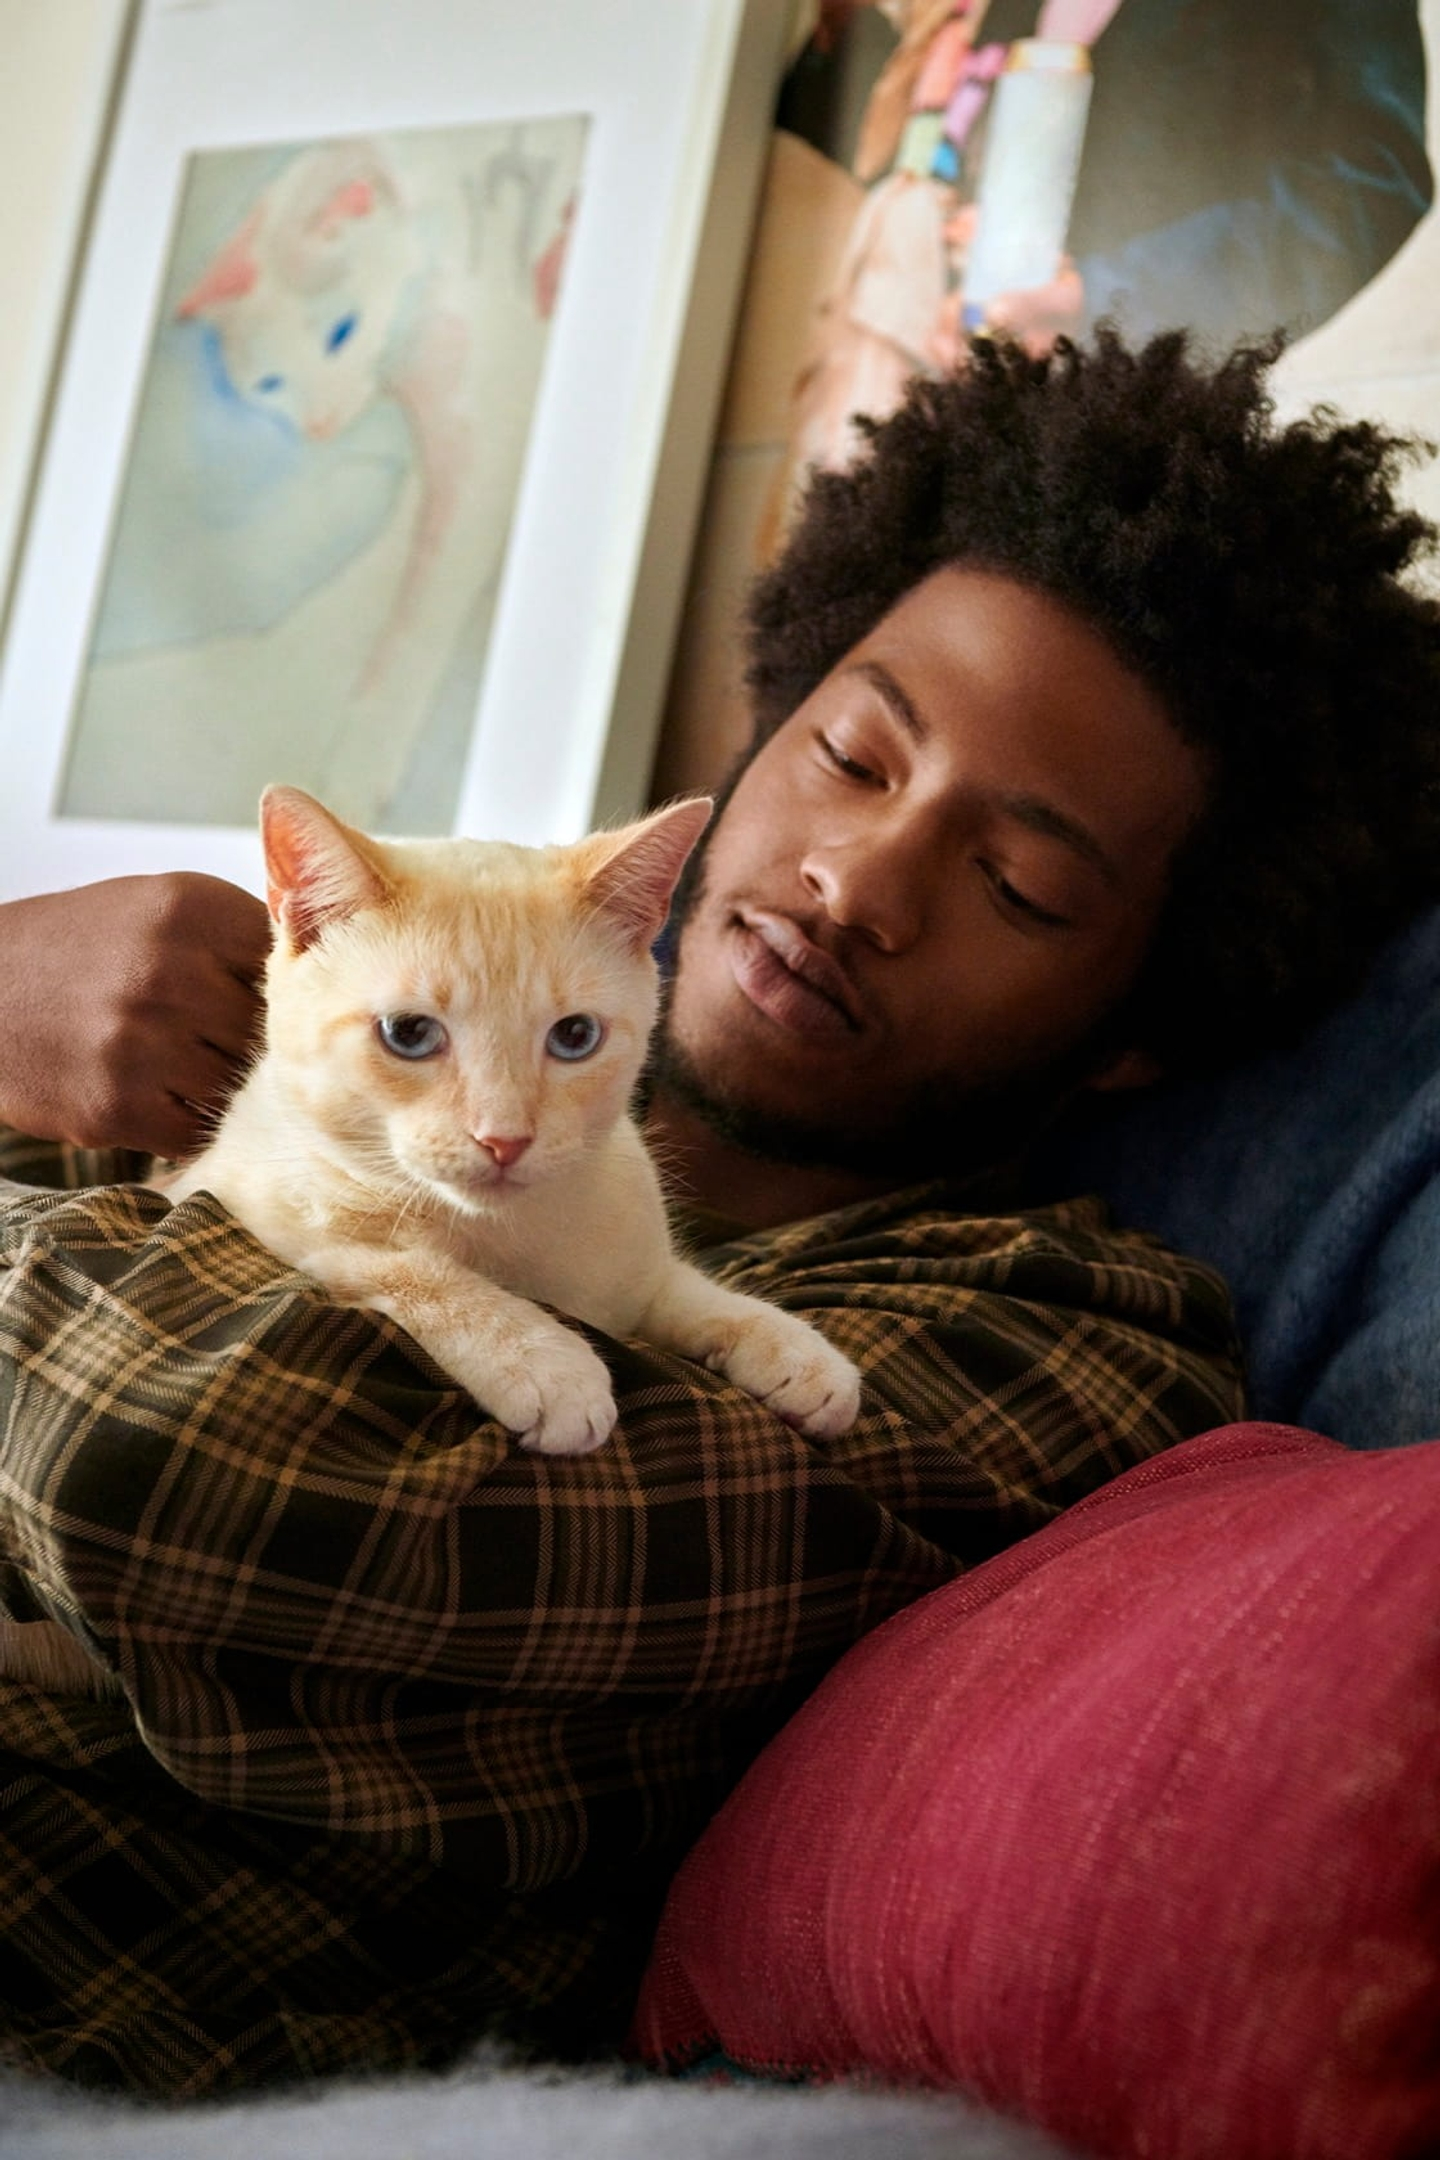 Man reclining on sofa while holding and stroking cat lying in his arms